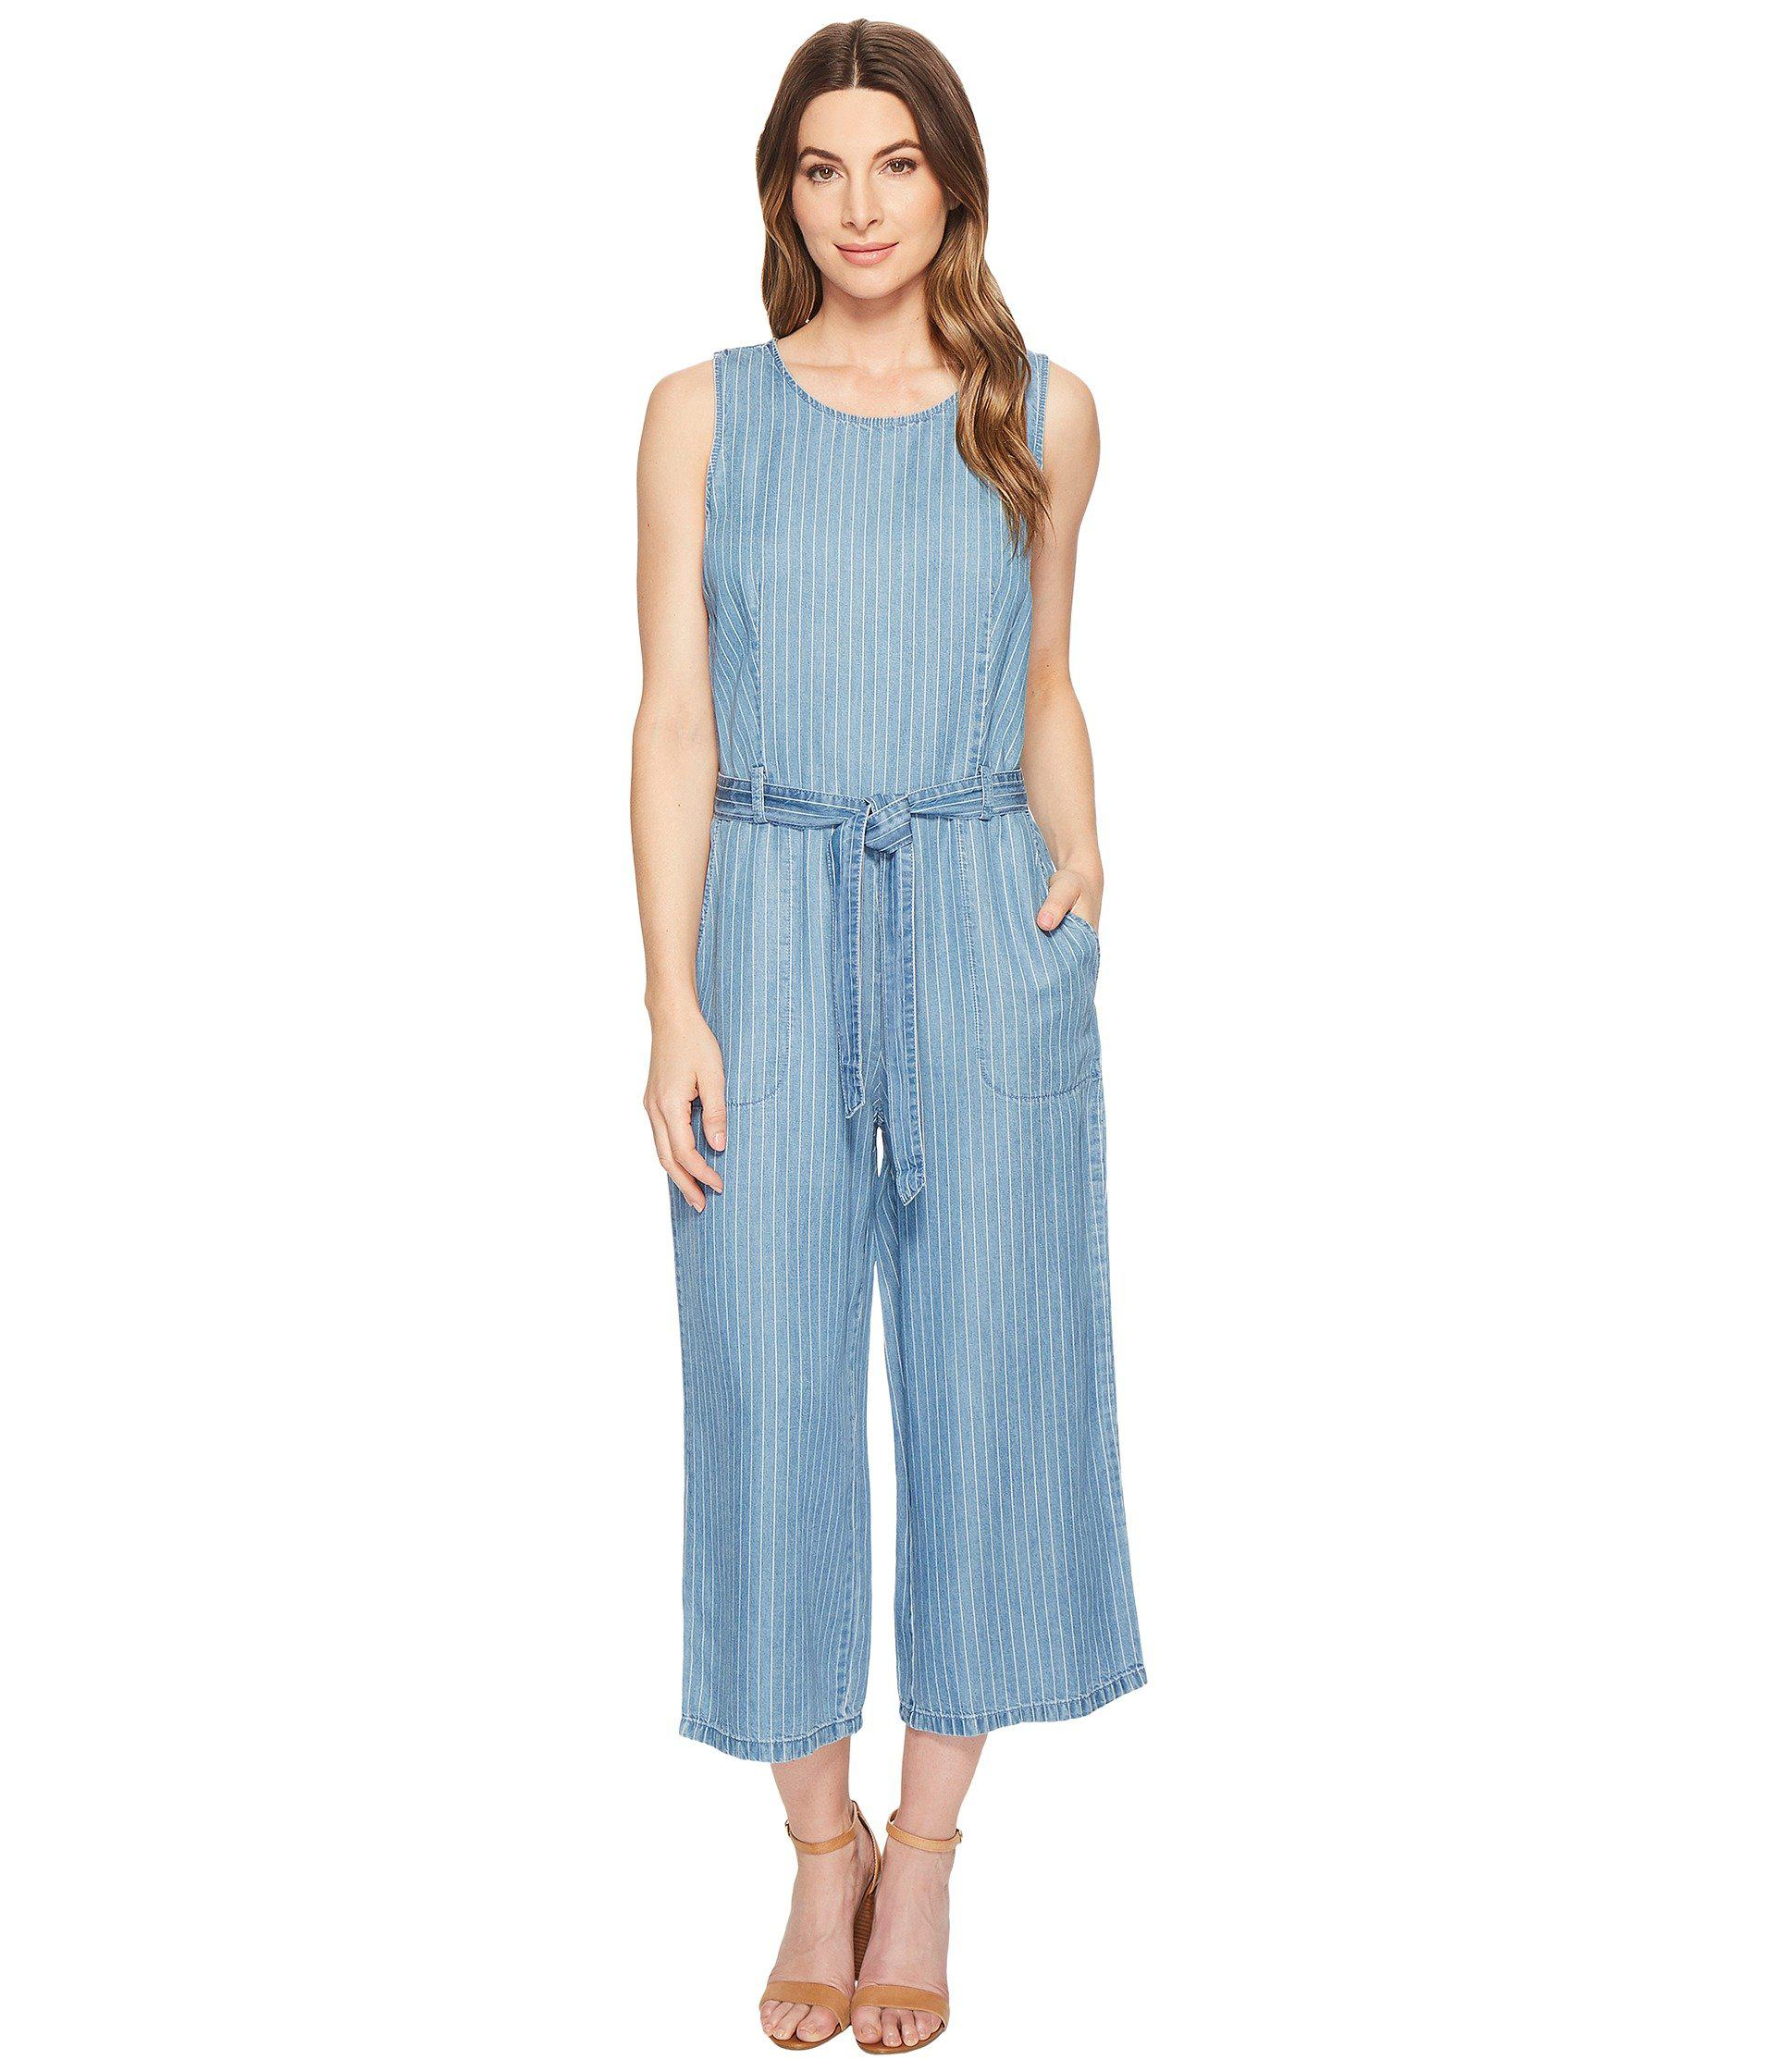 3dcc84a02cd8 Lyst - Two By Vince Camuto Sleeveless Stripe Belted Jumpsuit in Blue ...